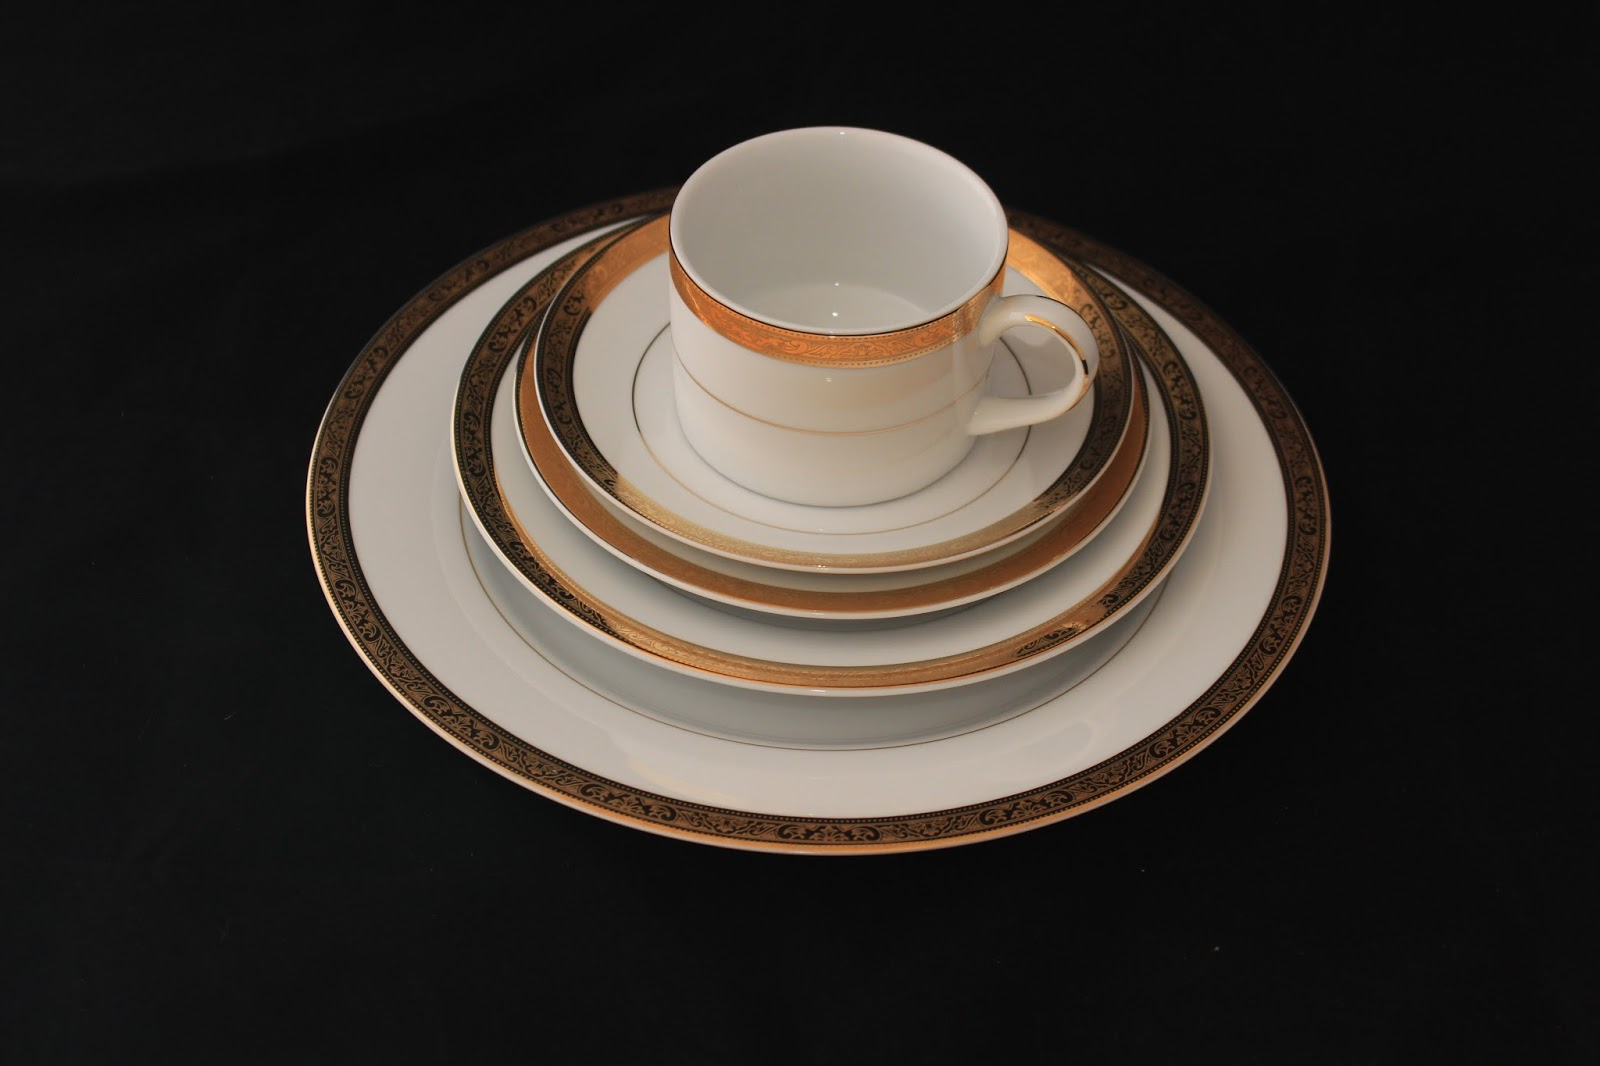 Dinnerware Imperial Gold China & Dinnerware: Imperial Gold China - USA Party Rental